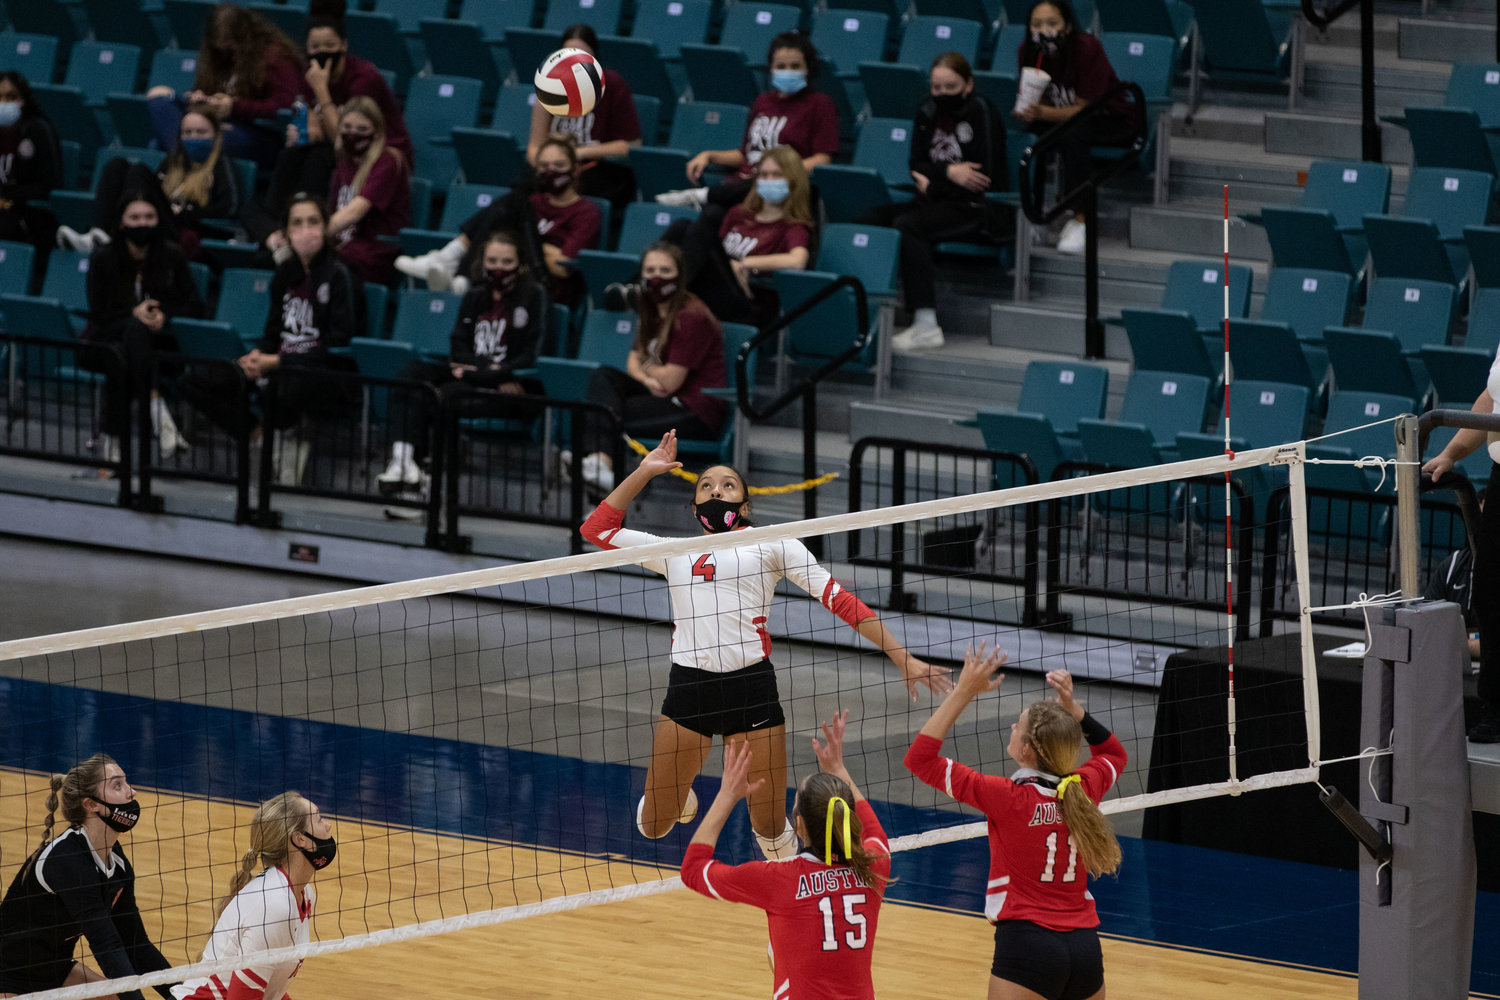 Katy High senior Perris Key goes up for a hit during the Tigers' sweep of Fort Bend Austin in their Class 6A bi-district playoff match Friday at the Merrell Center.